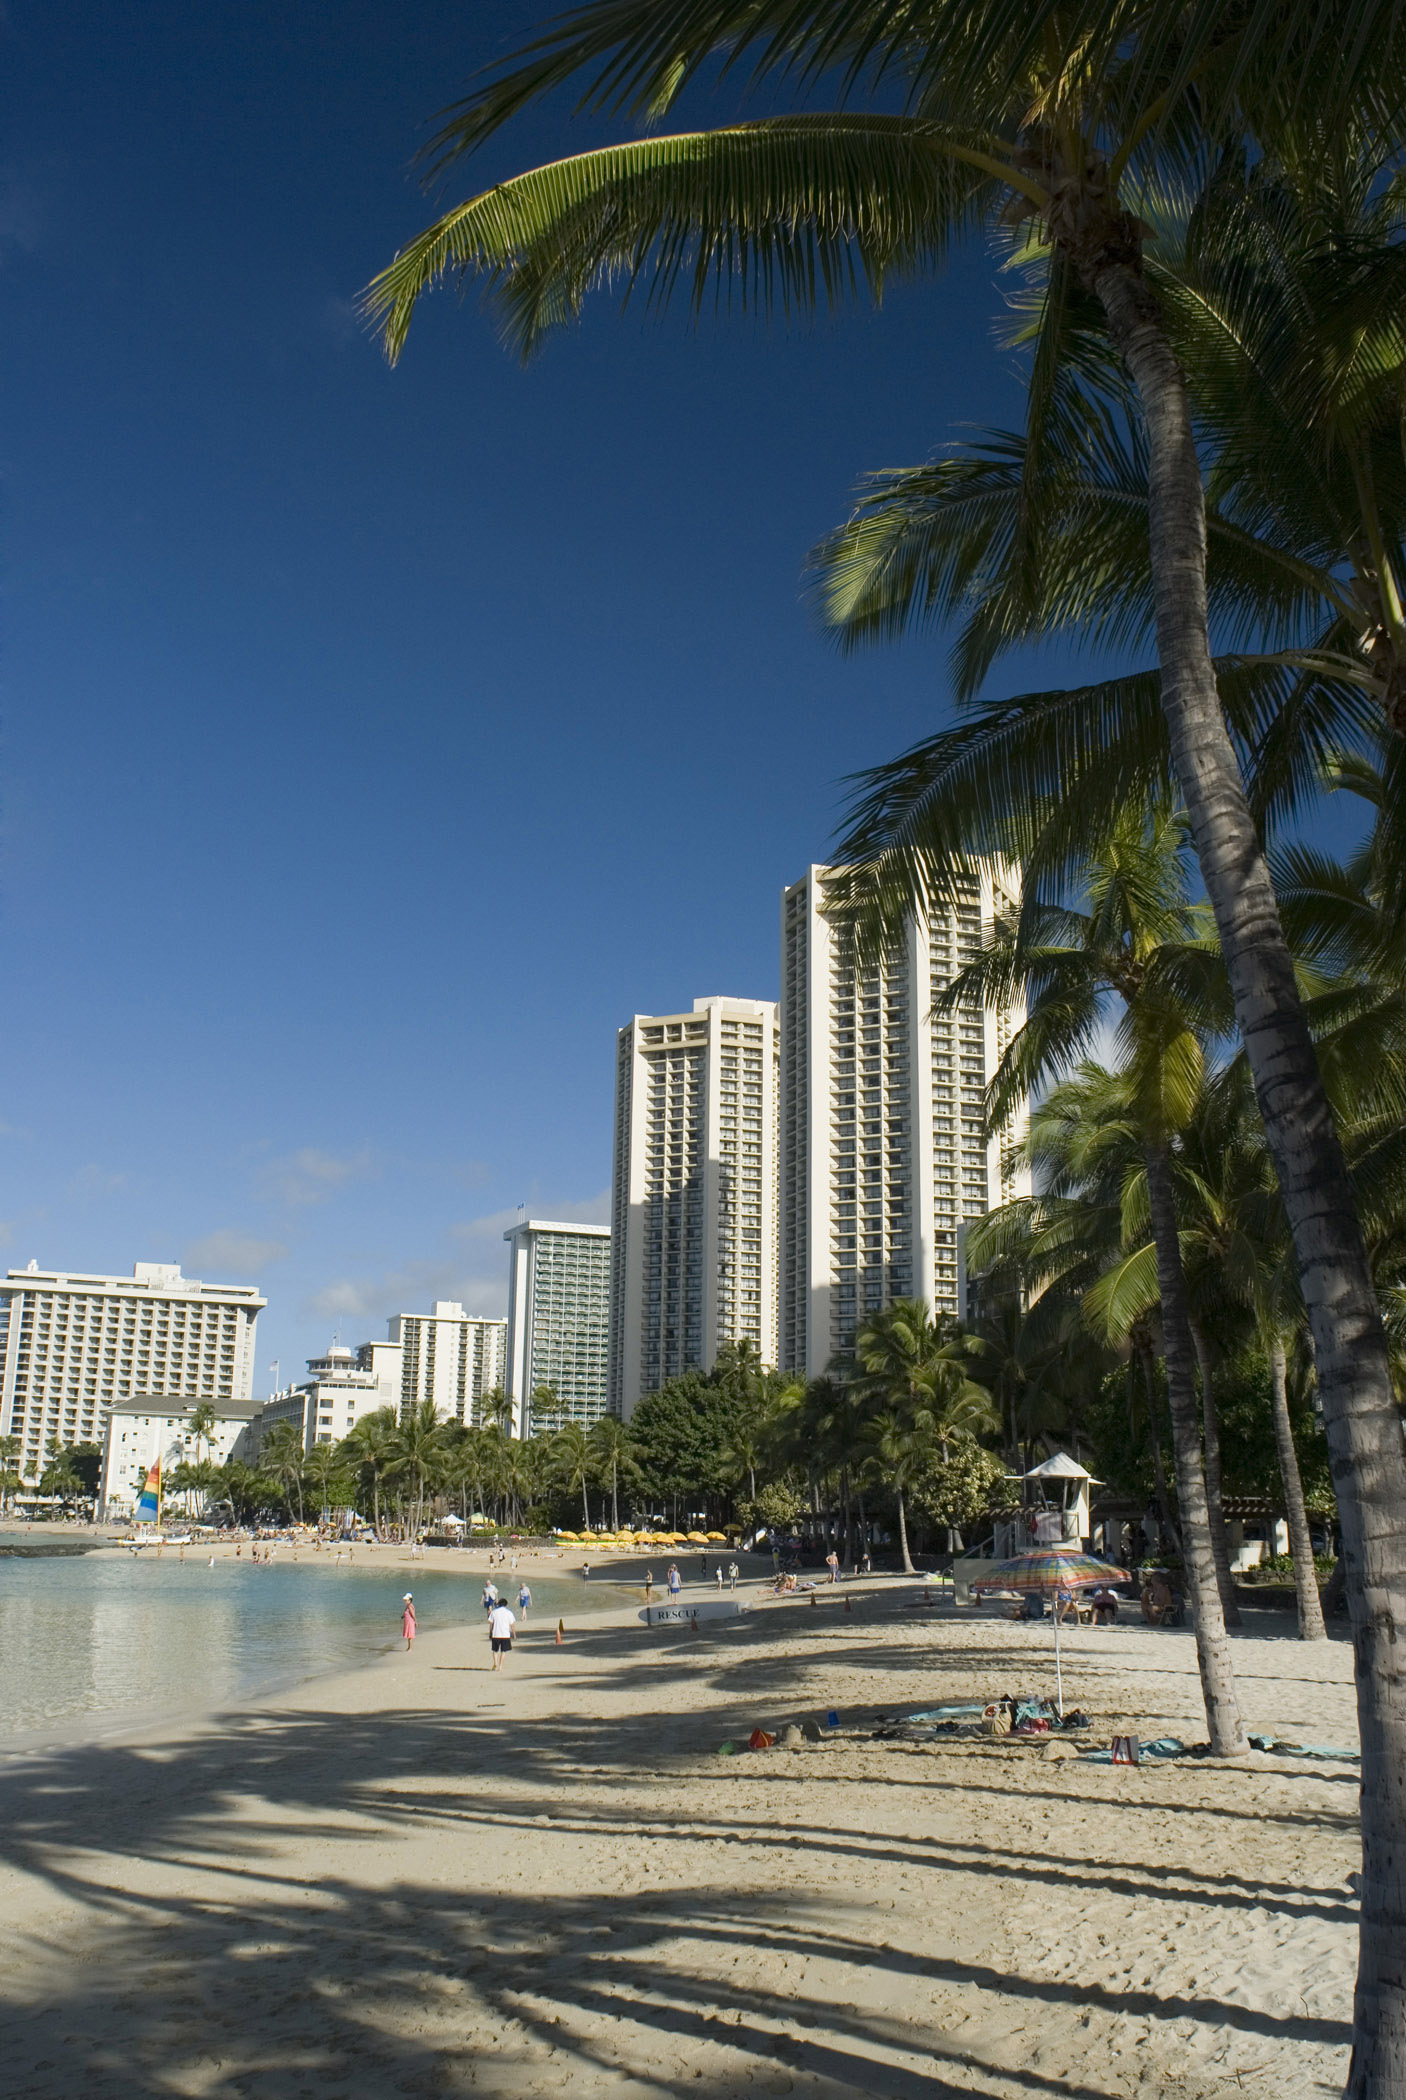 Scenic view of Waikiki Beach, Oahu Island, Hawaii, with its golden sand, palm trees and apartment buildings